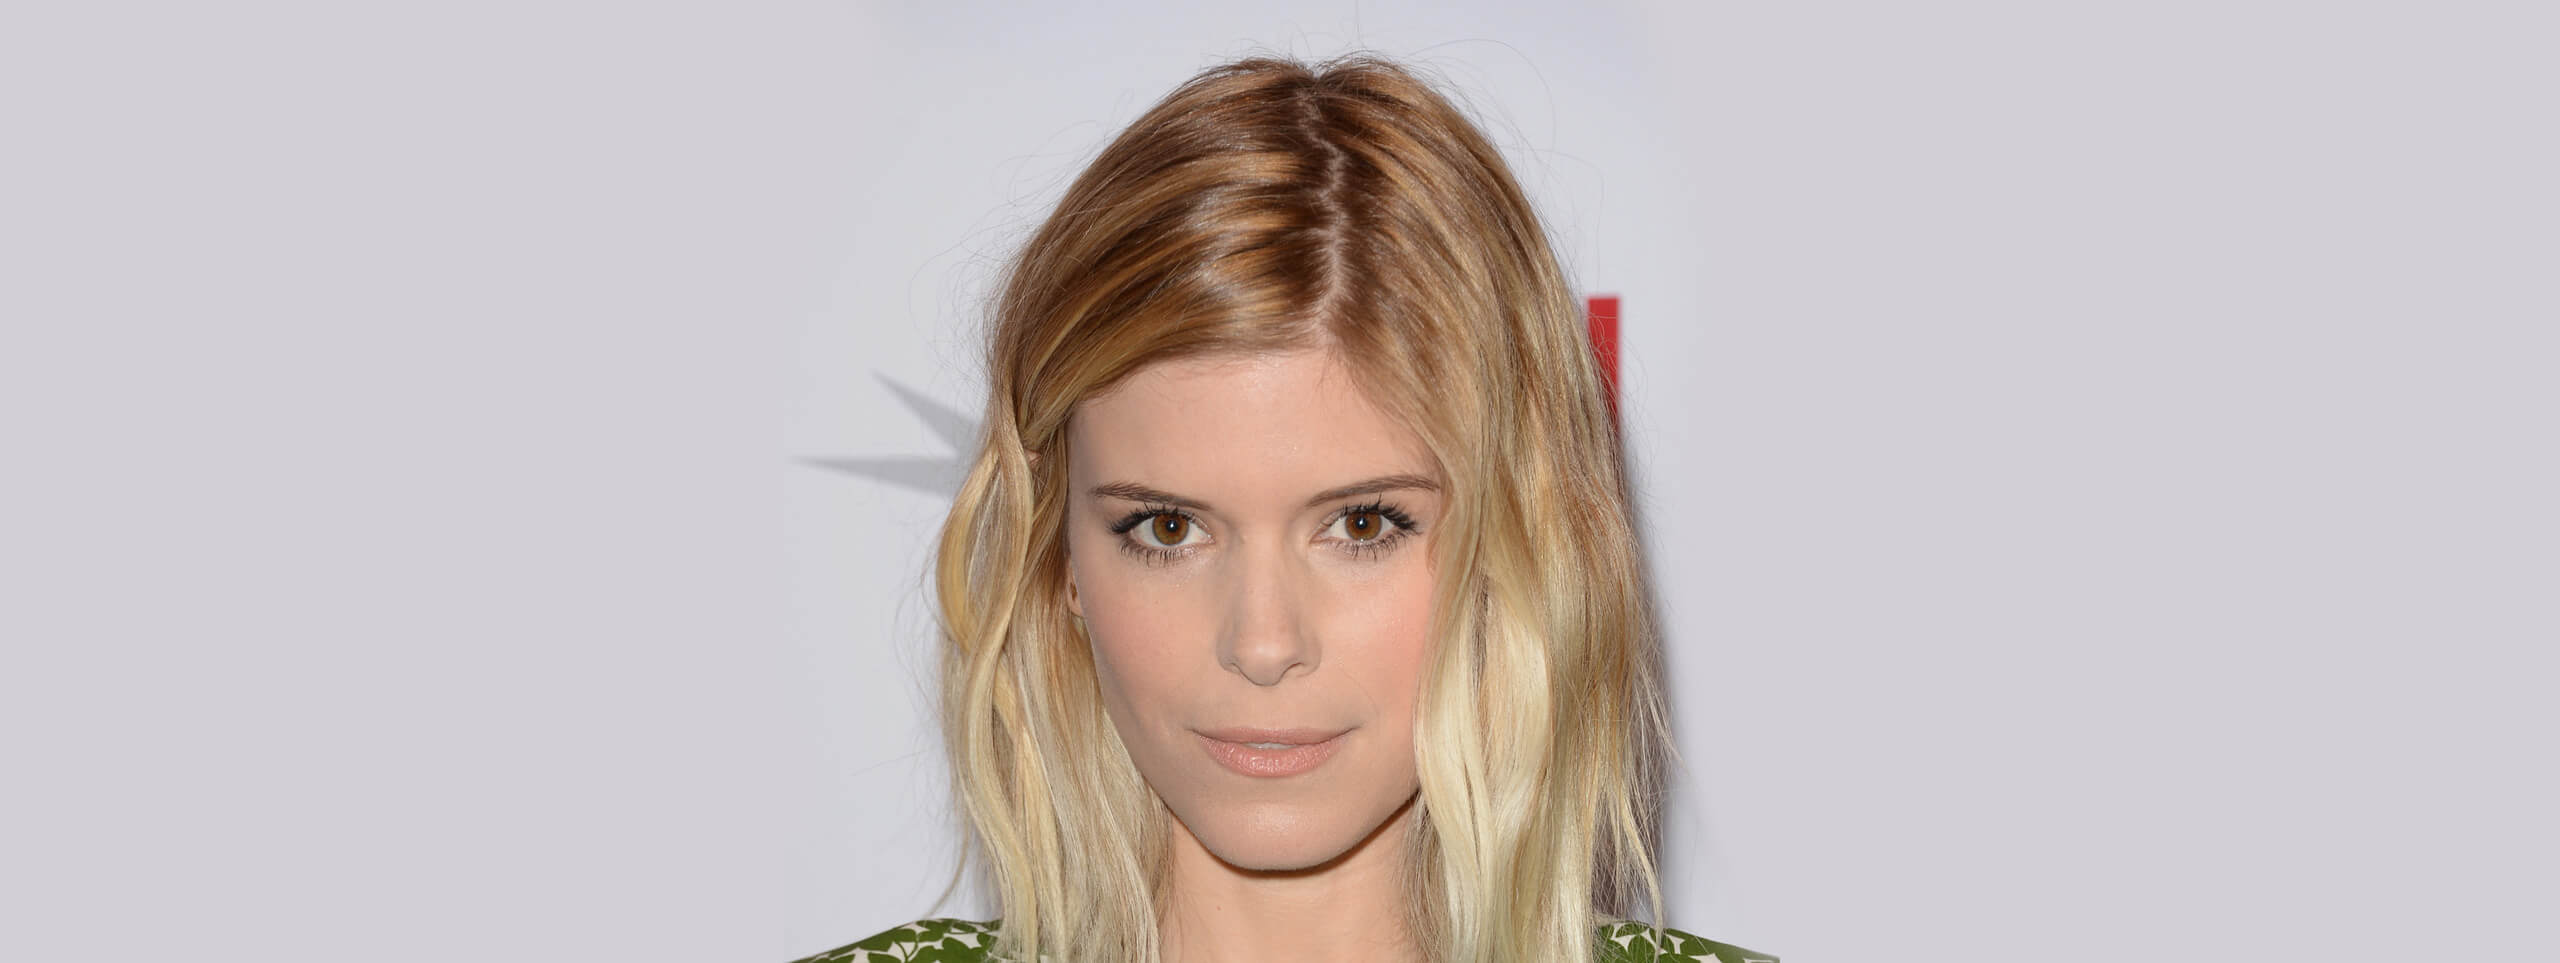 Kate Mara acconciatura capelli biondi media lunghezza